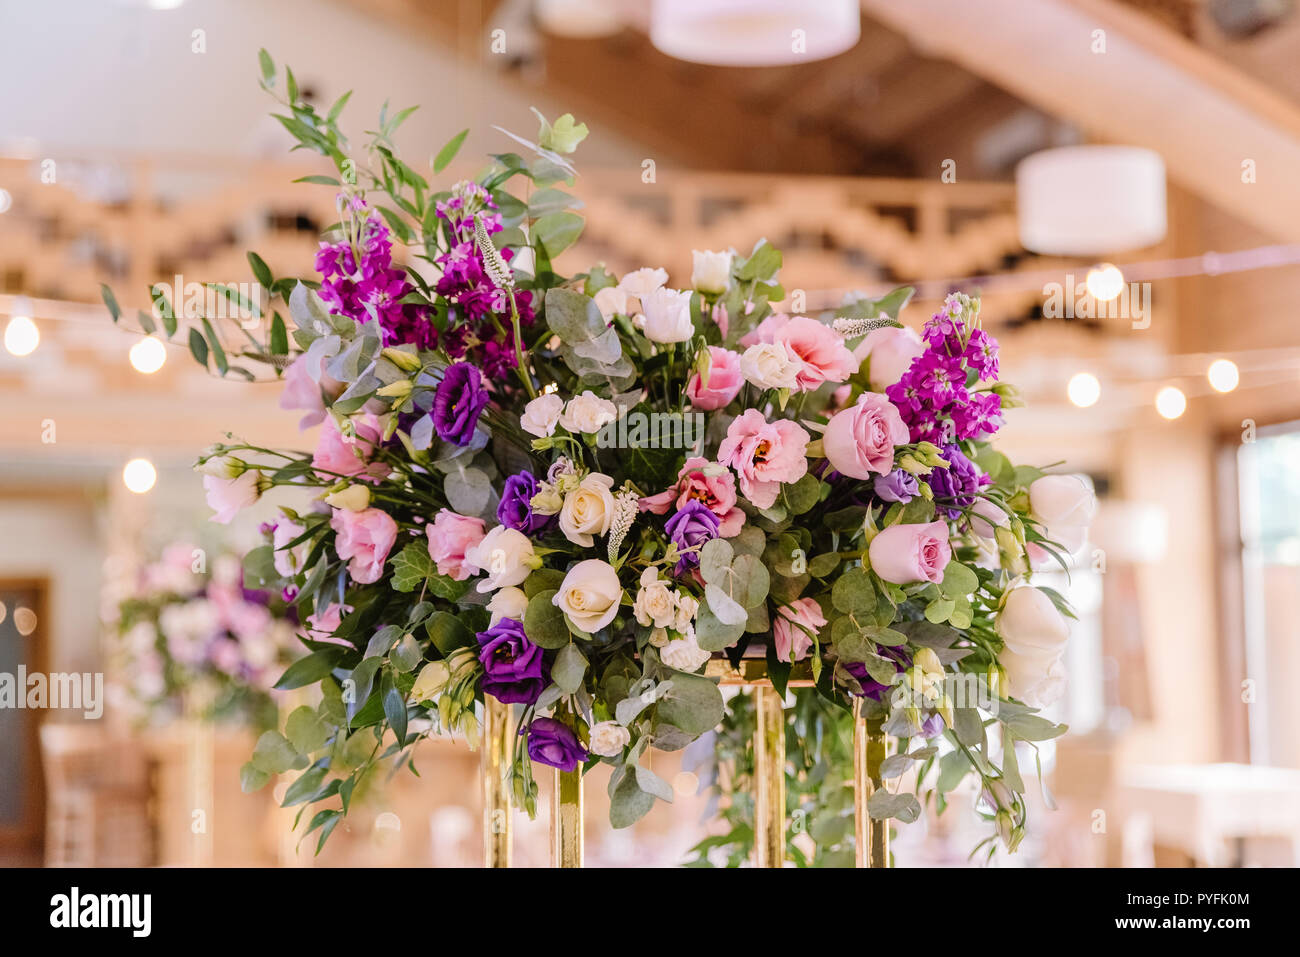 Volume magnificent composition from flowers at a wedding. - Stock Image